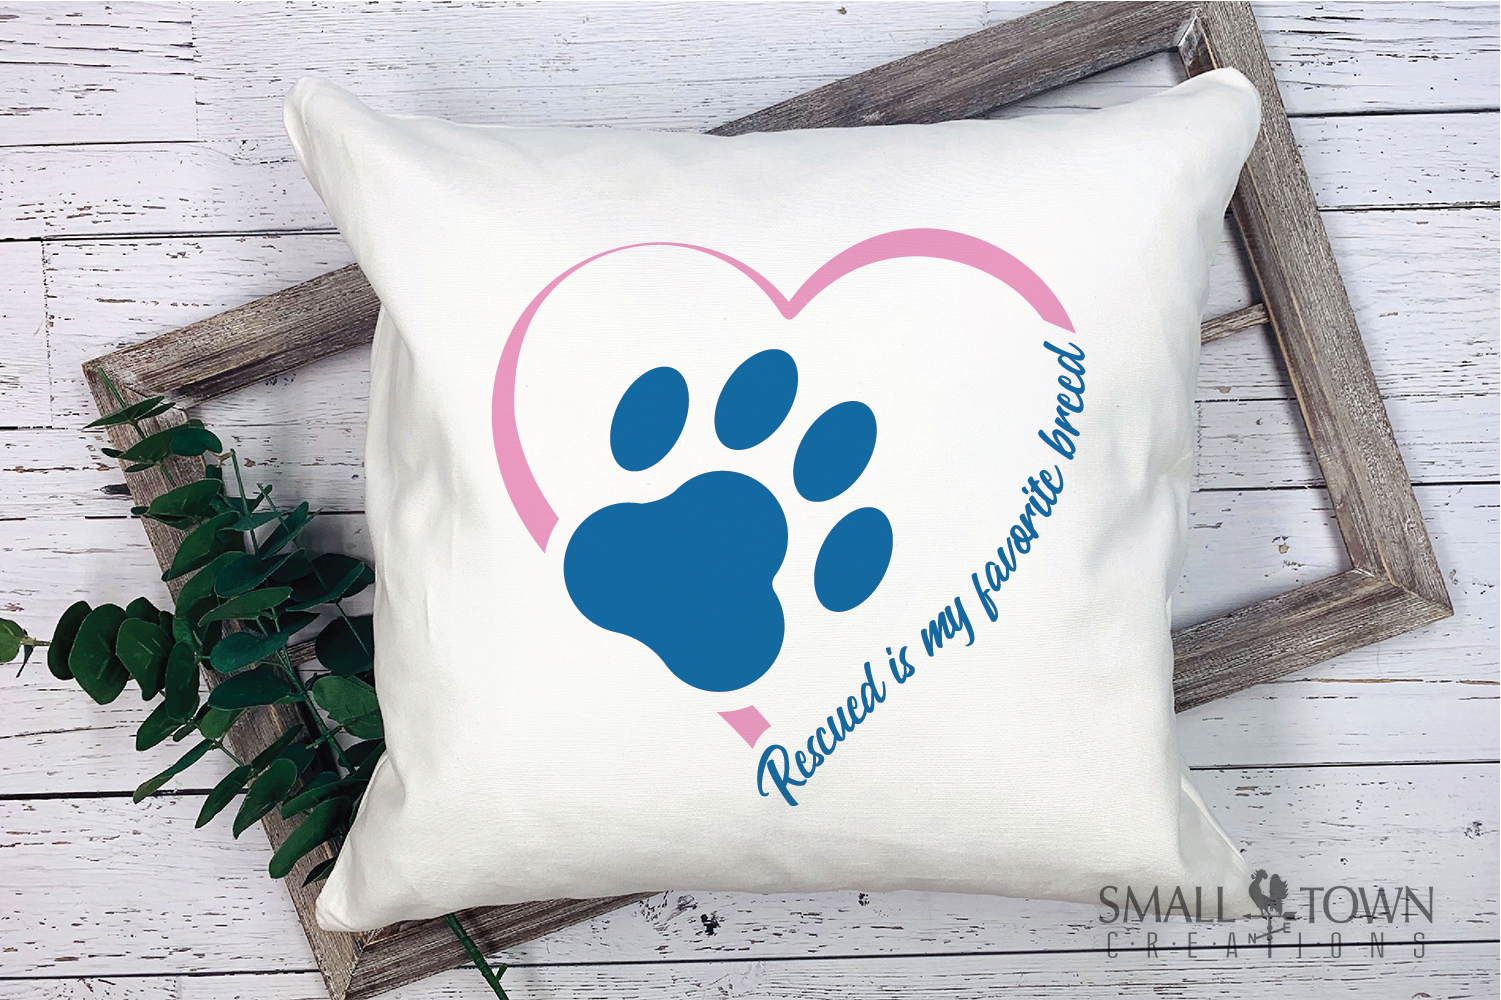 Rescued Dog, Adopted Dog, Dog breed, PRINT, CUT & DESIGN example image 3